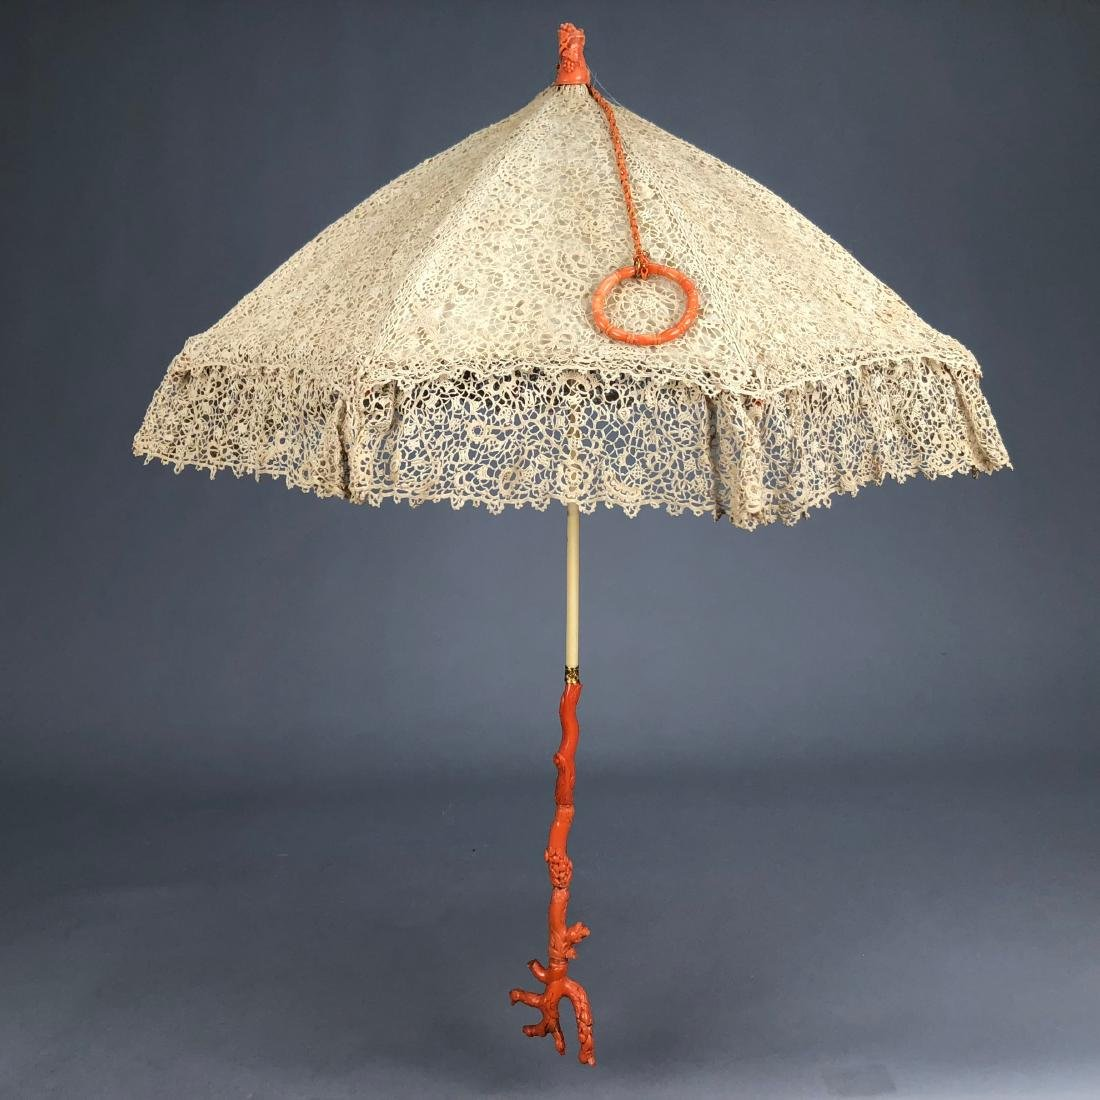 IRISH CROCHET PARASOL with CARVED CORAL HANDLE, 1850